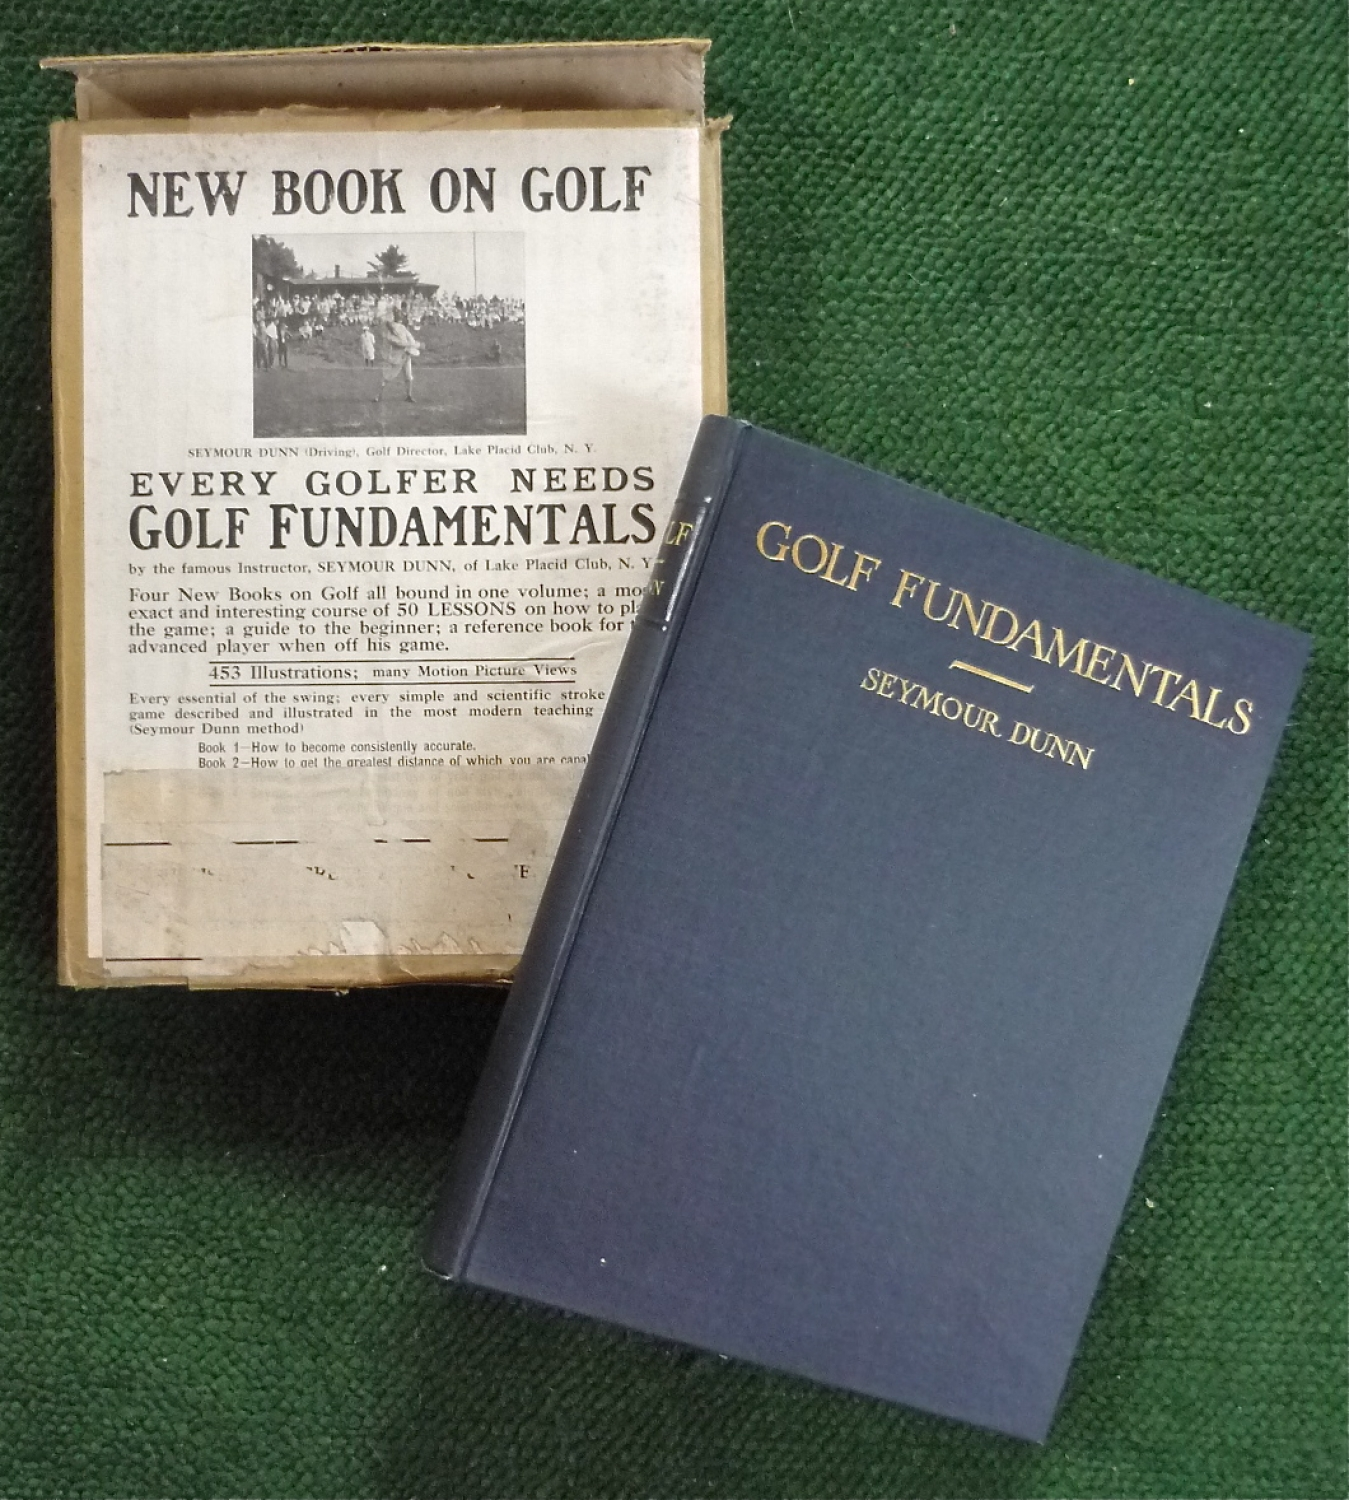 Golf Fundamentals by Seymour Dunn